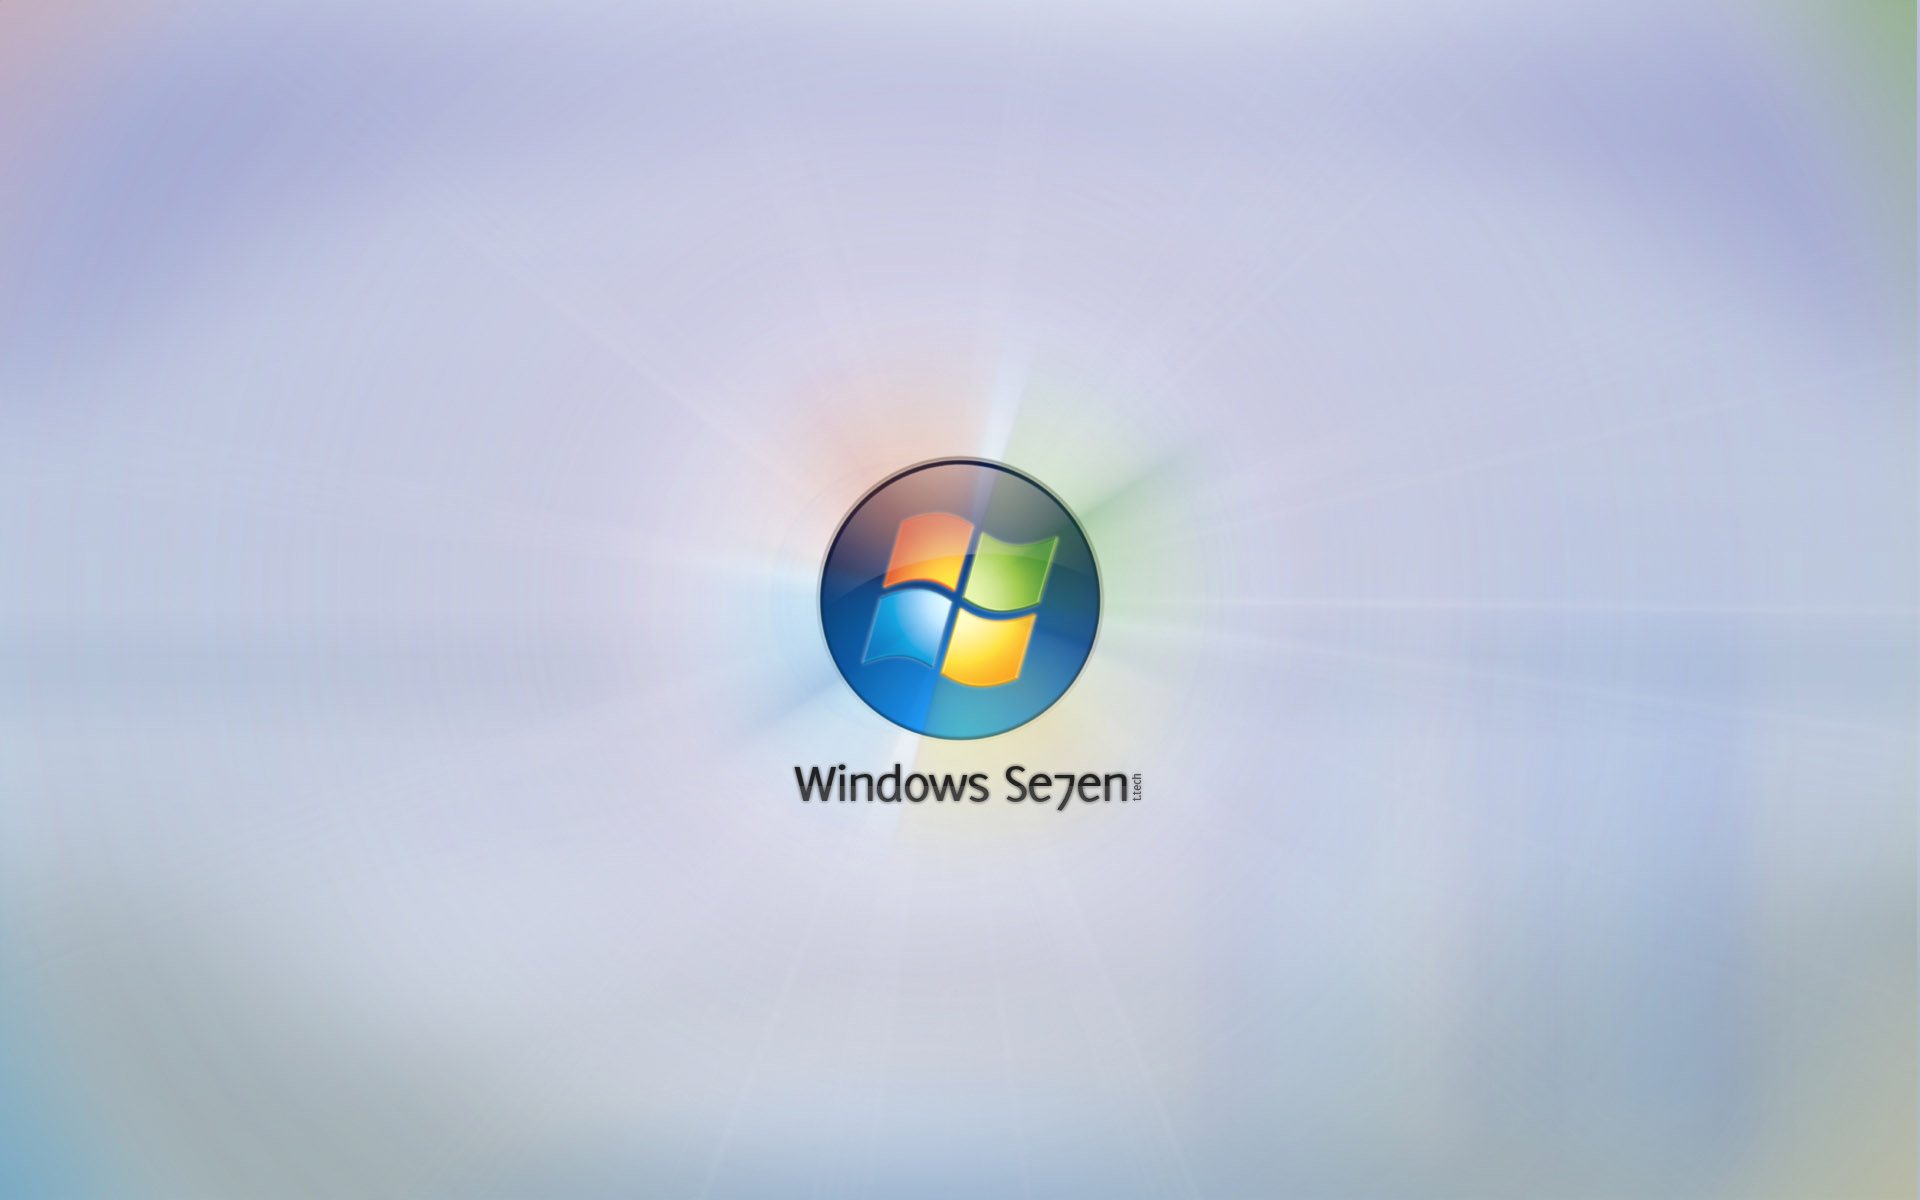 Official Windows 7 Wallpaper